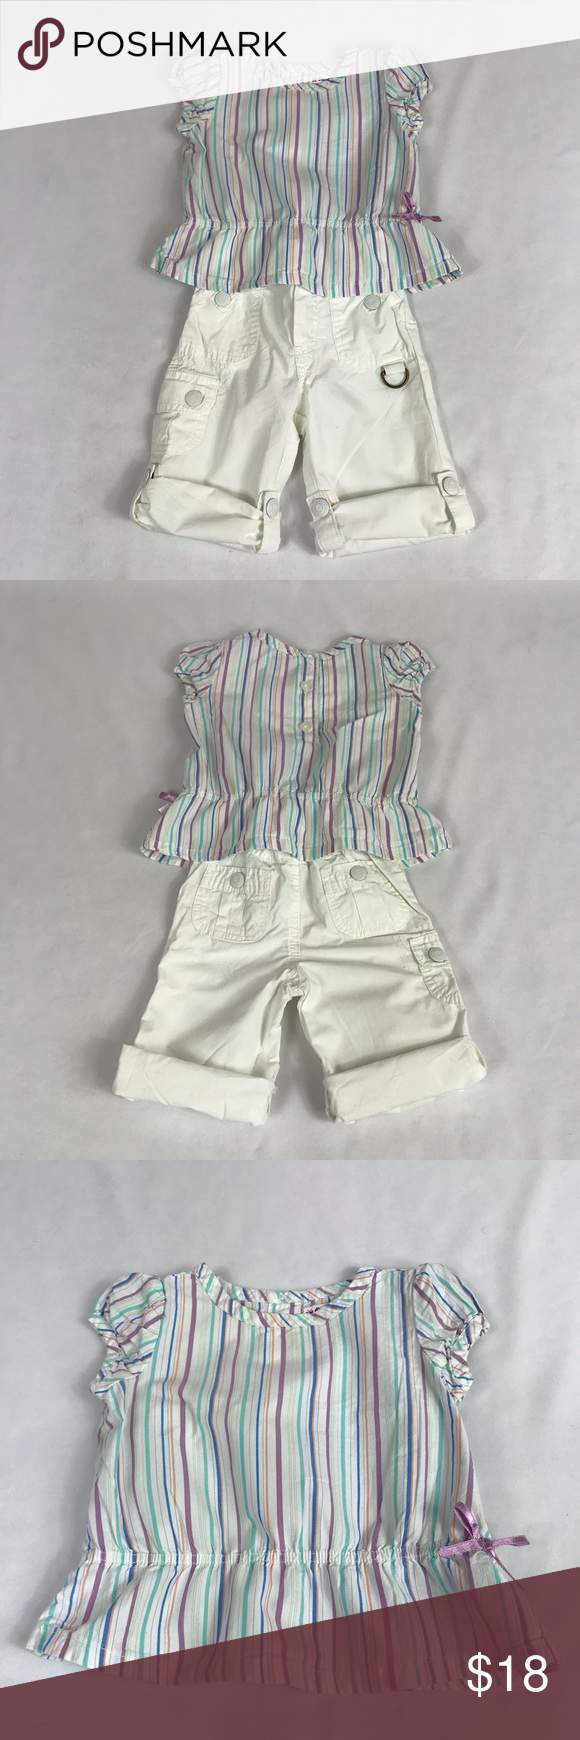 Outfits & Sets Clothing, Shoes & Accessories Hot Sale 12 18 M Custom Made Blue Top Shorts Outfit Guc Bloomers A Great Variety Of Models